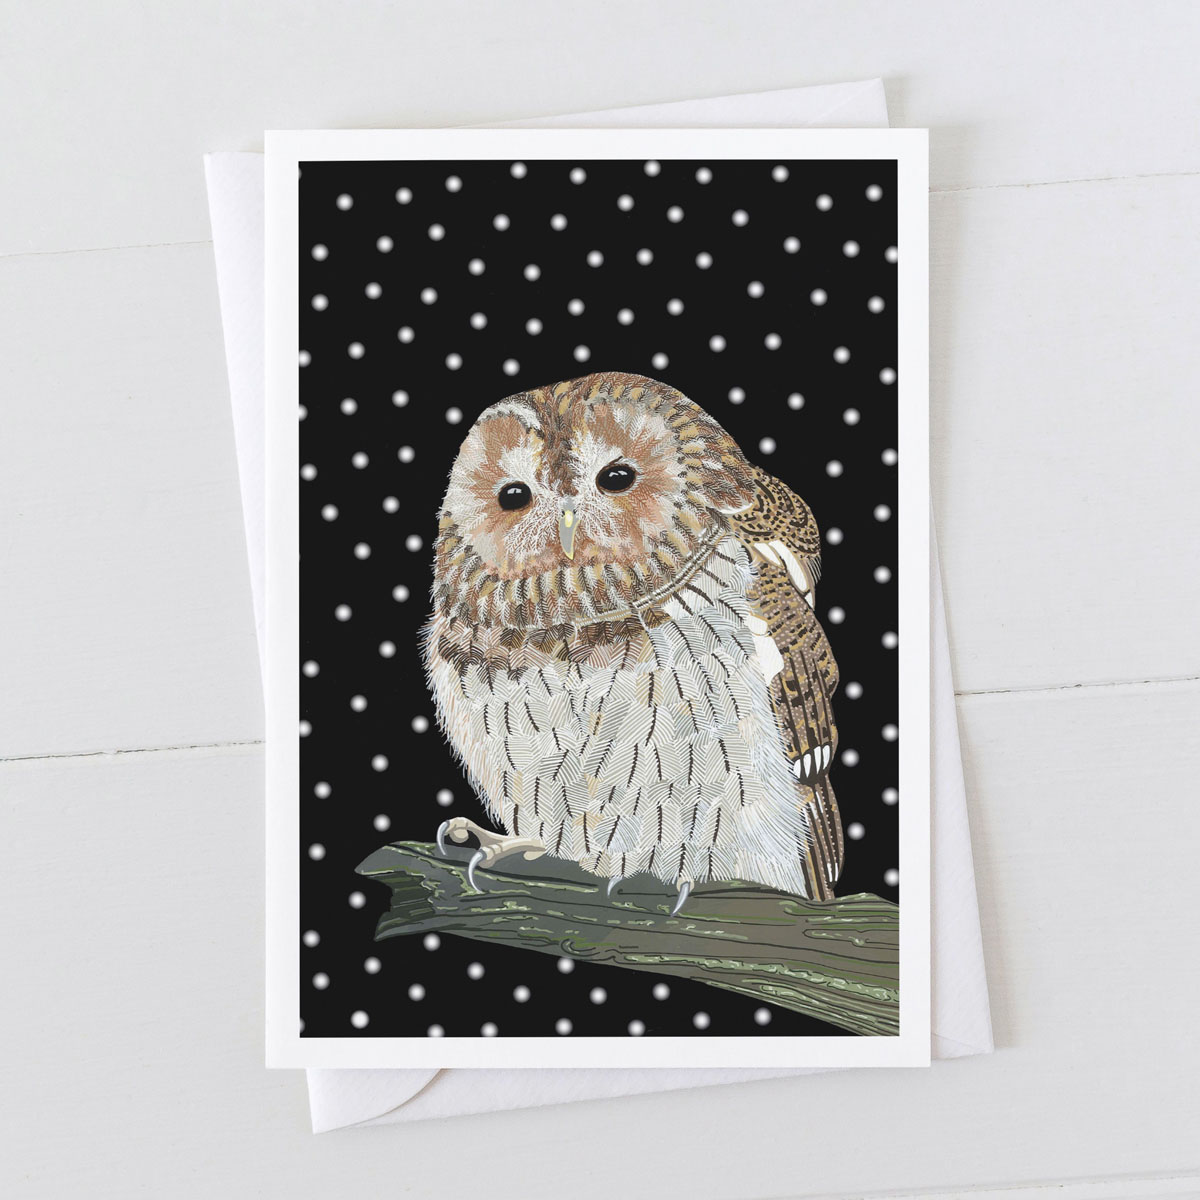 Tawny Owl Bird in Snow Christmas Greeting Card